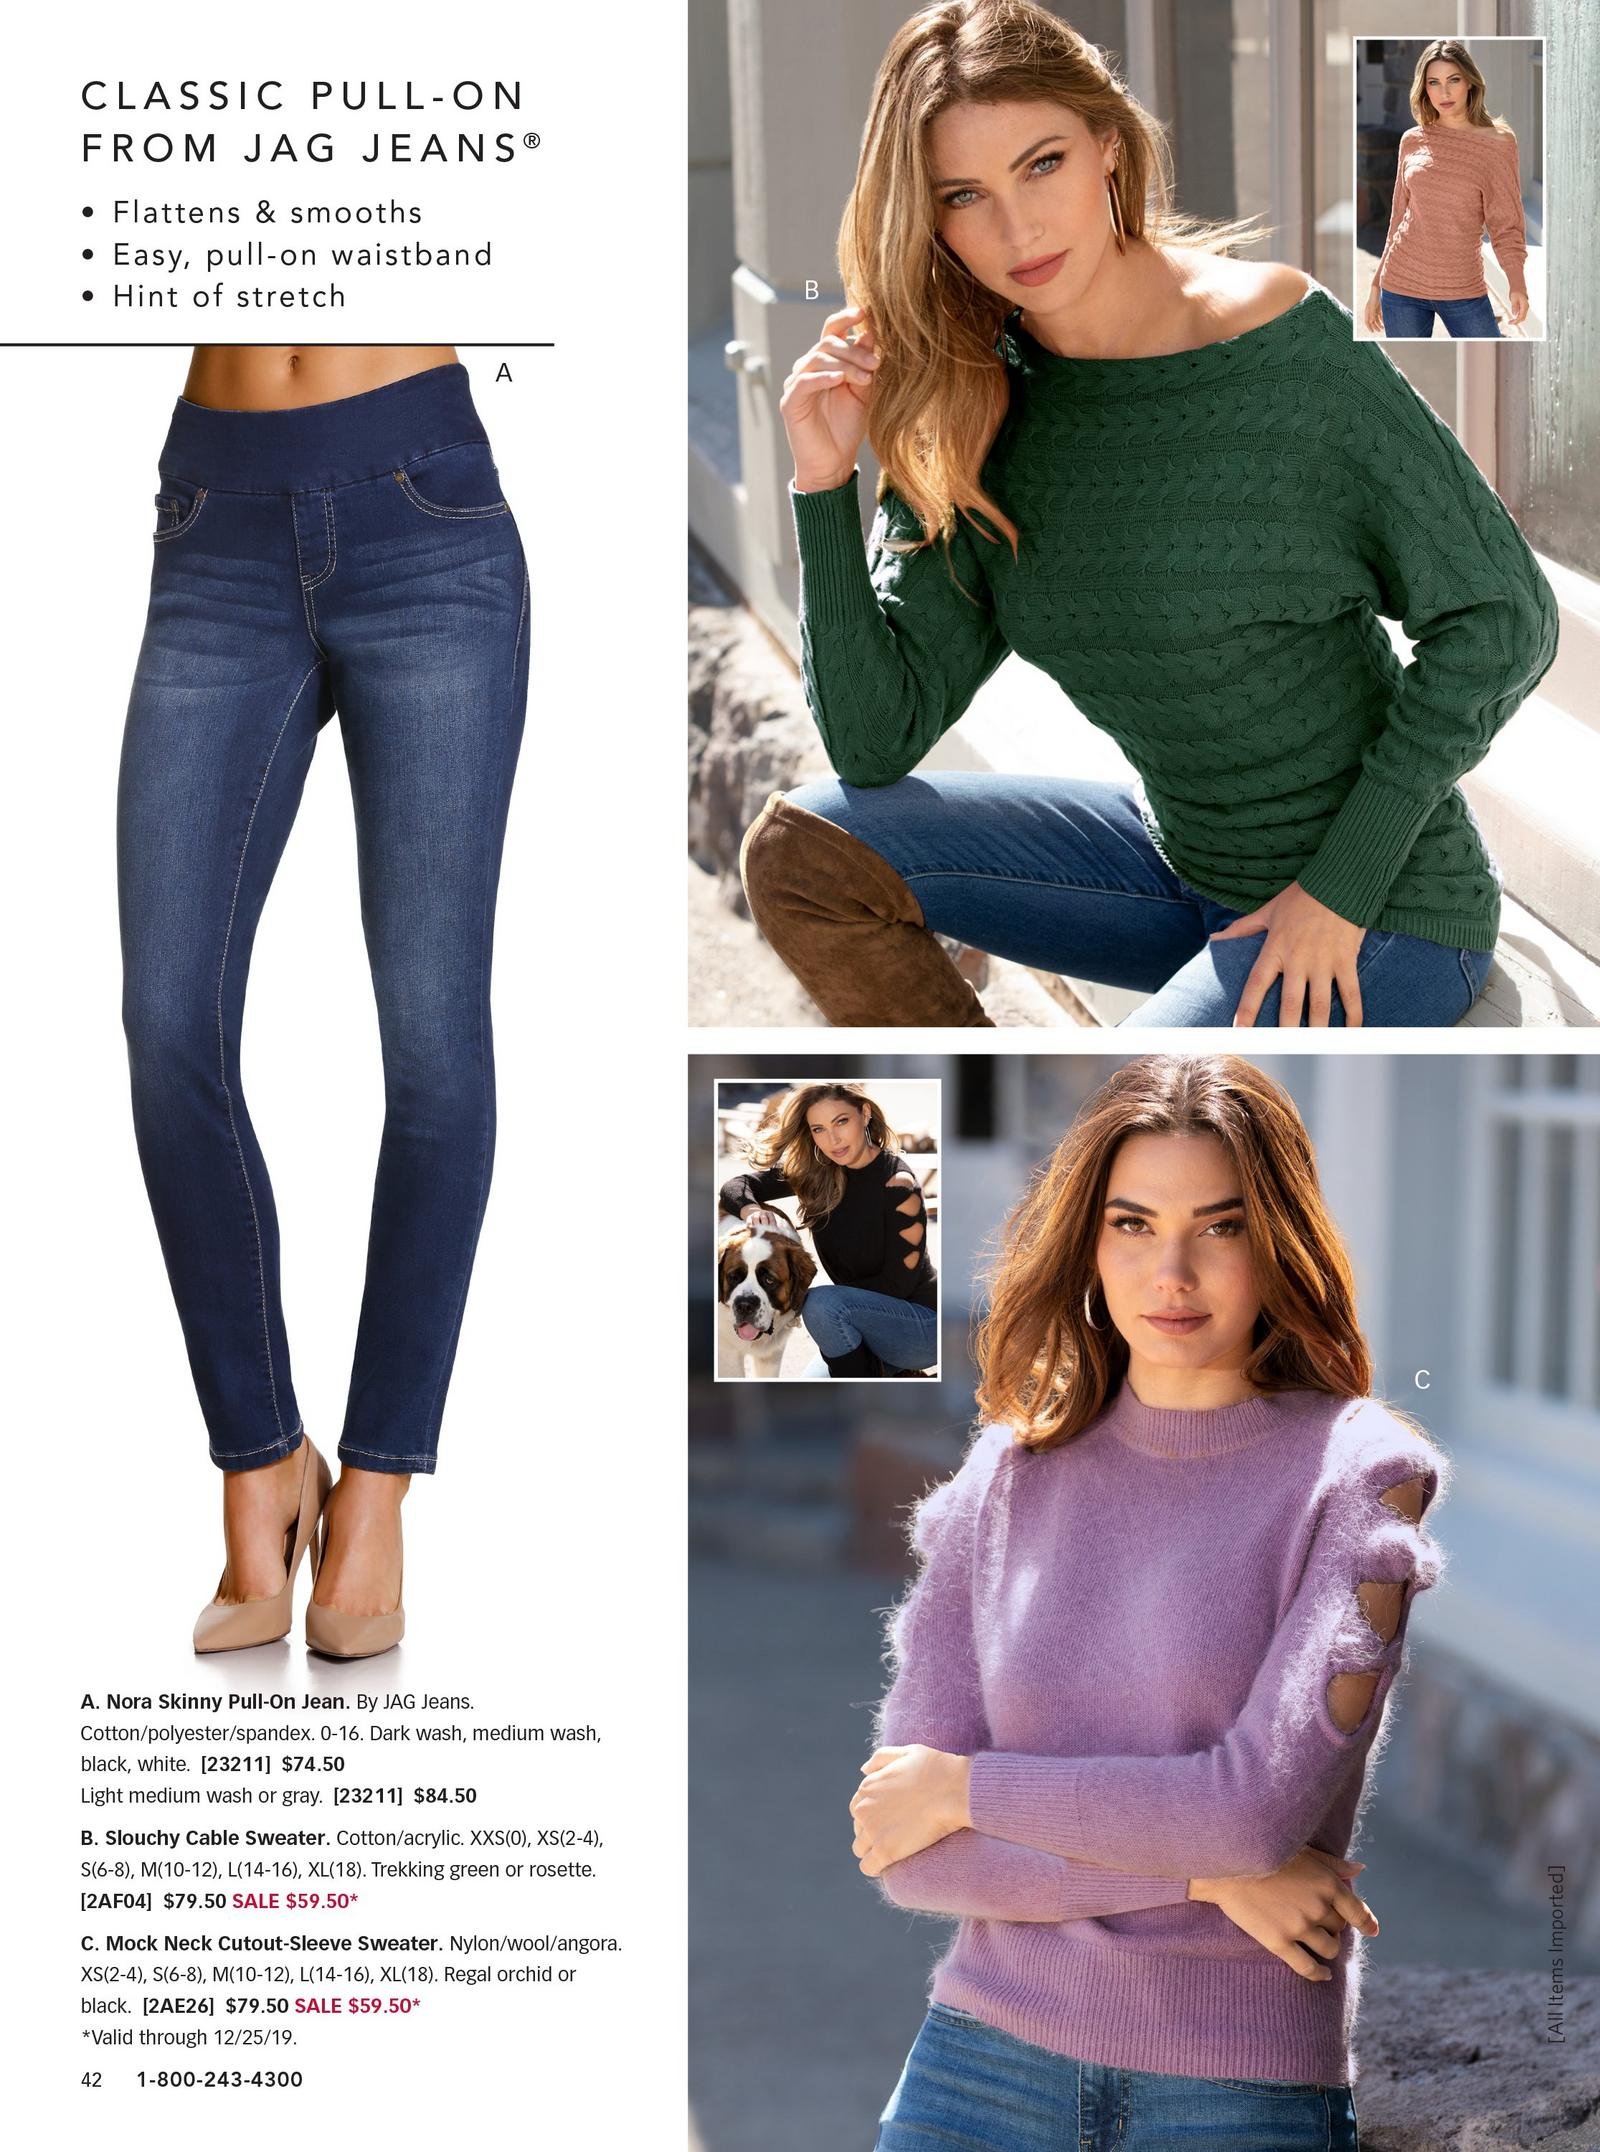 left silo of the classic pull-on jeans. top right: green cable sweater with silo in pink. bottom right: purple mock neck cutout-sleeve sweater.